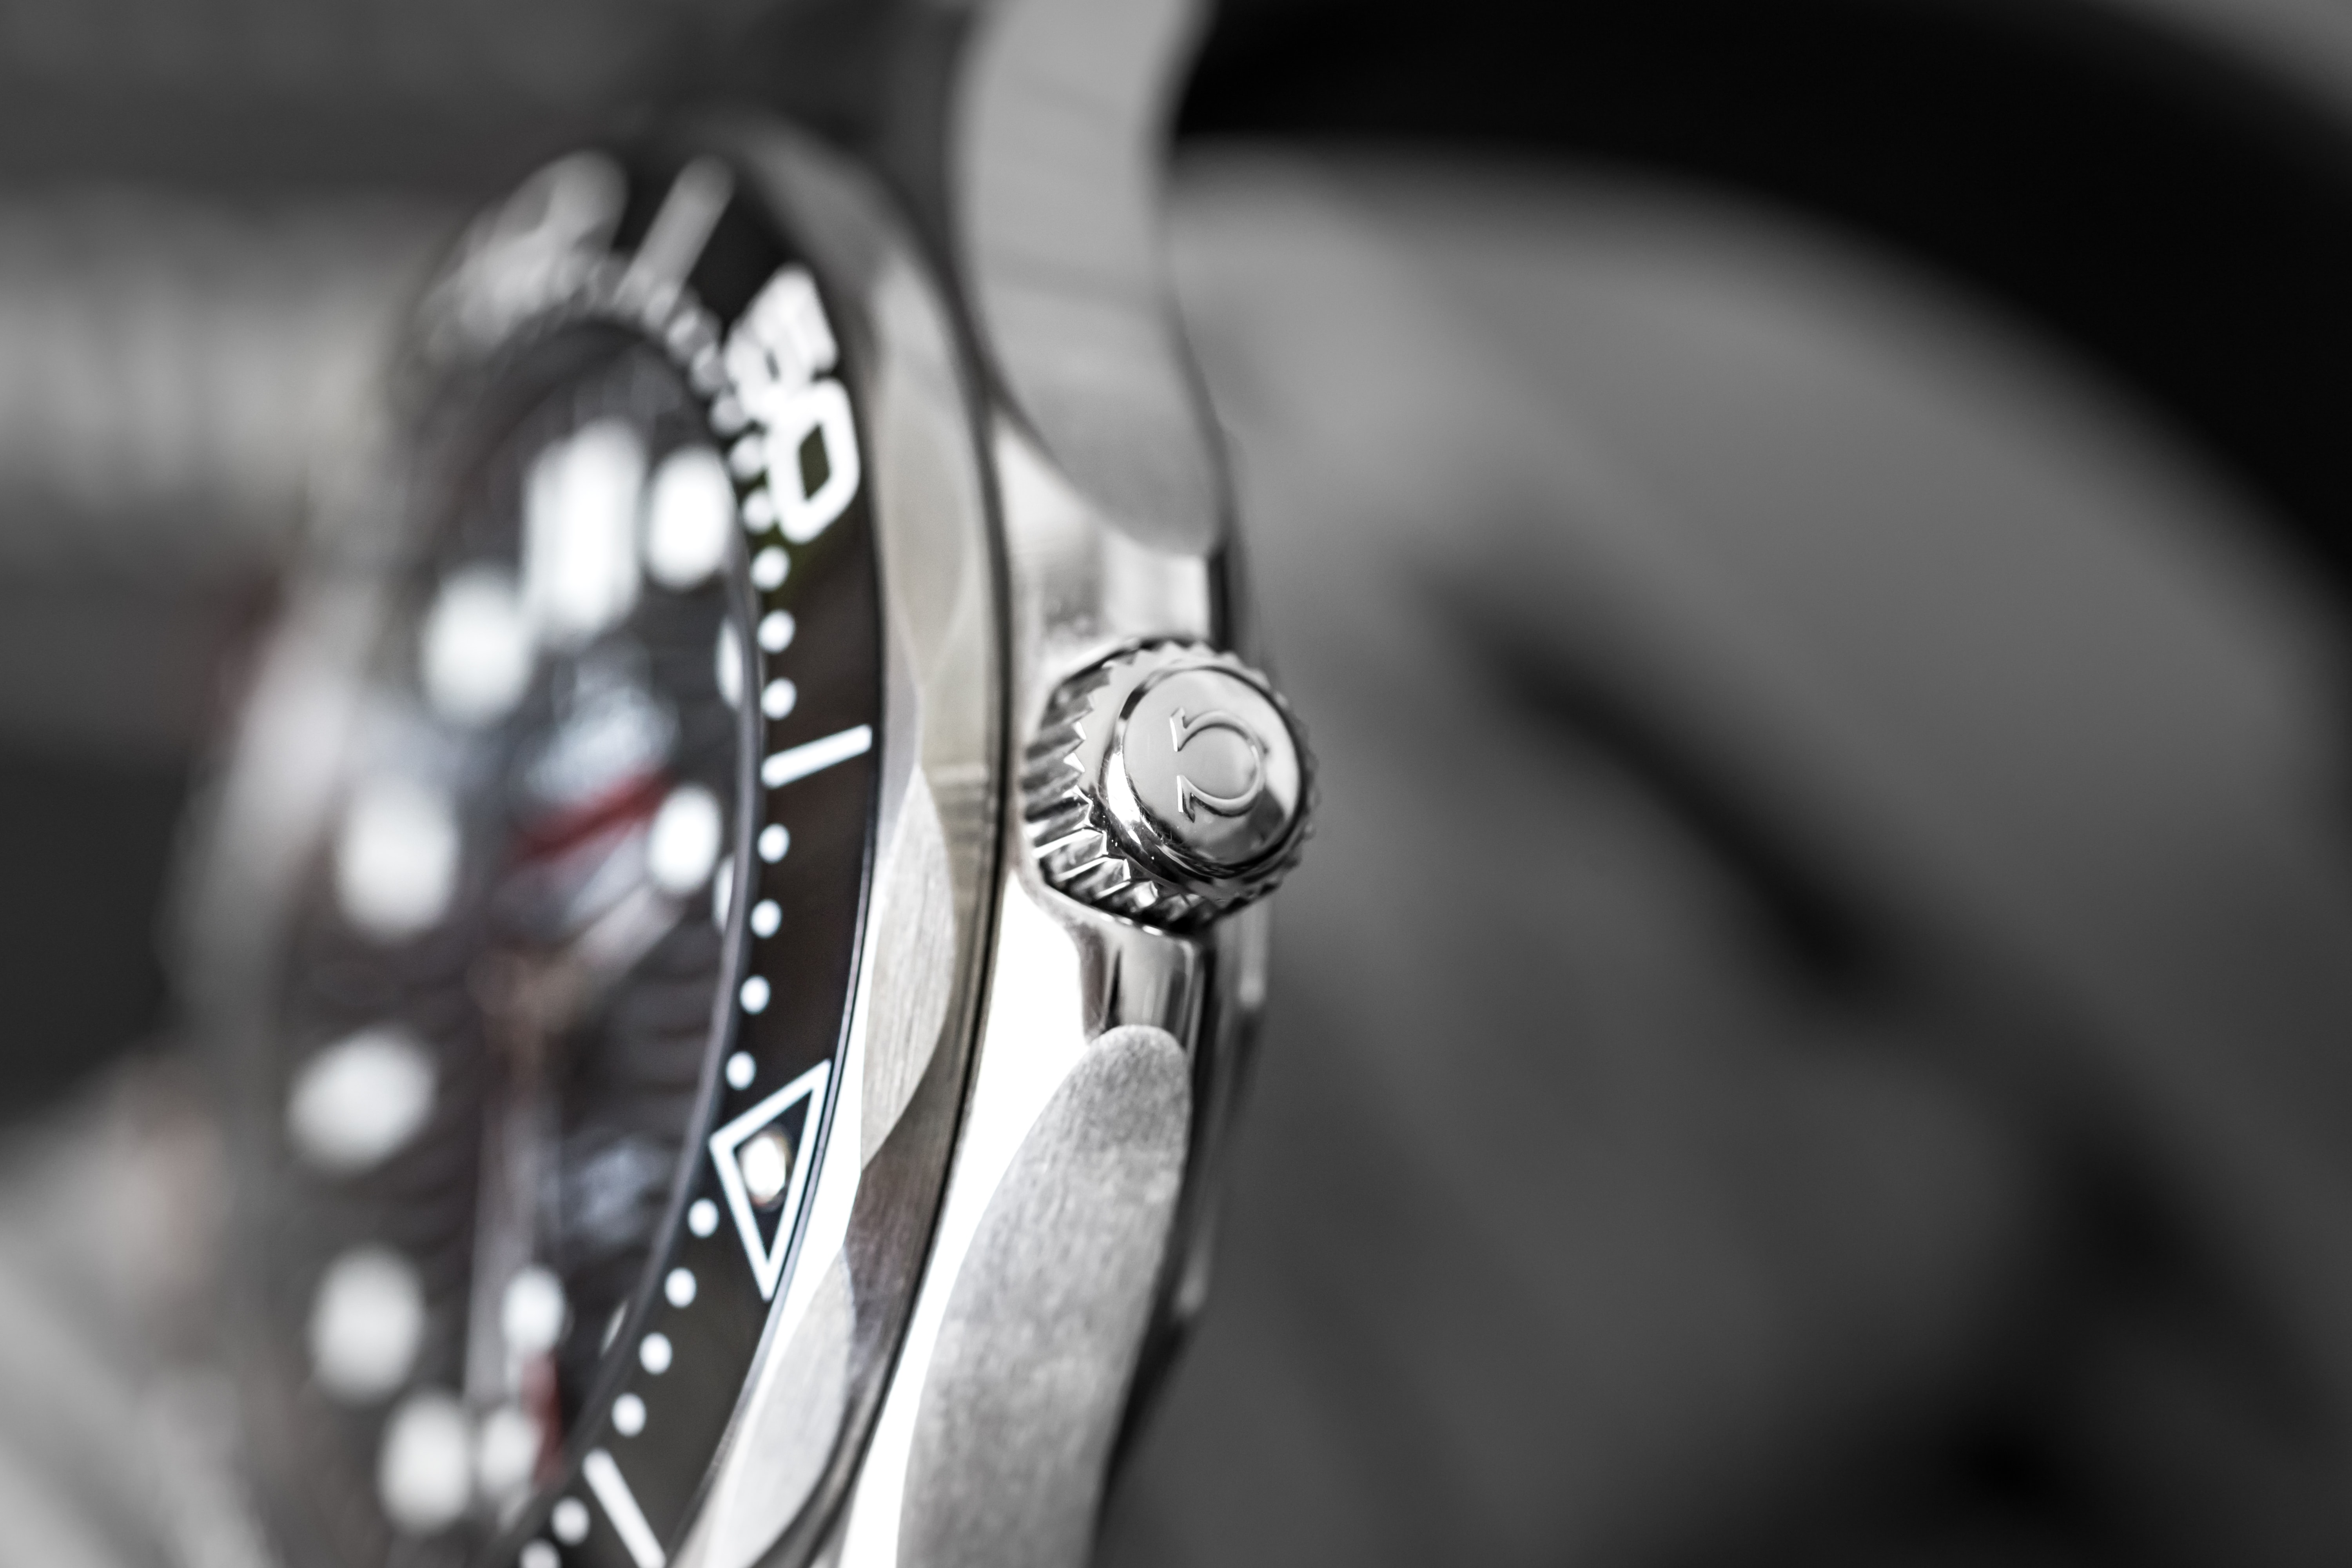 In-Depth: Diving With The Omega Seamaster Professional 300M SM300 pro 6